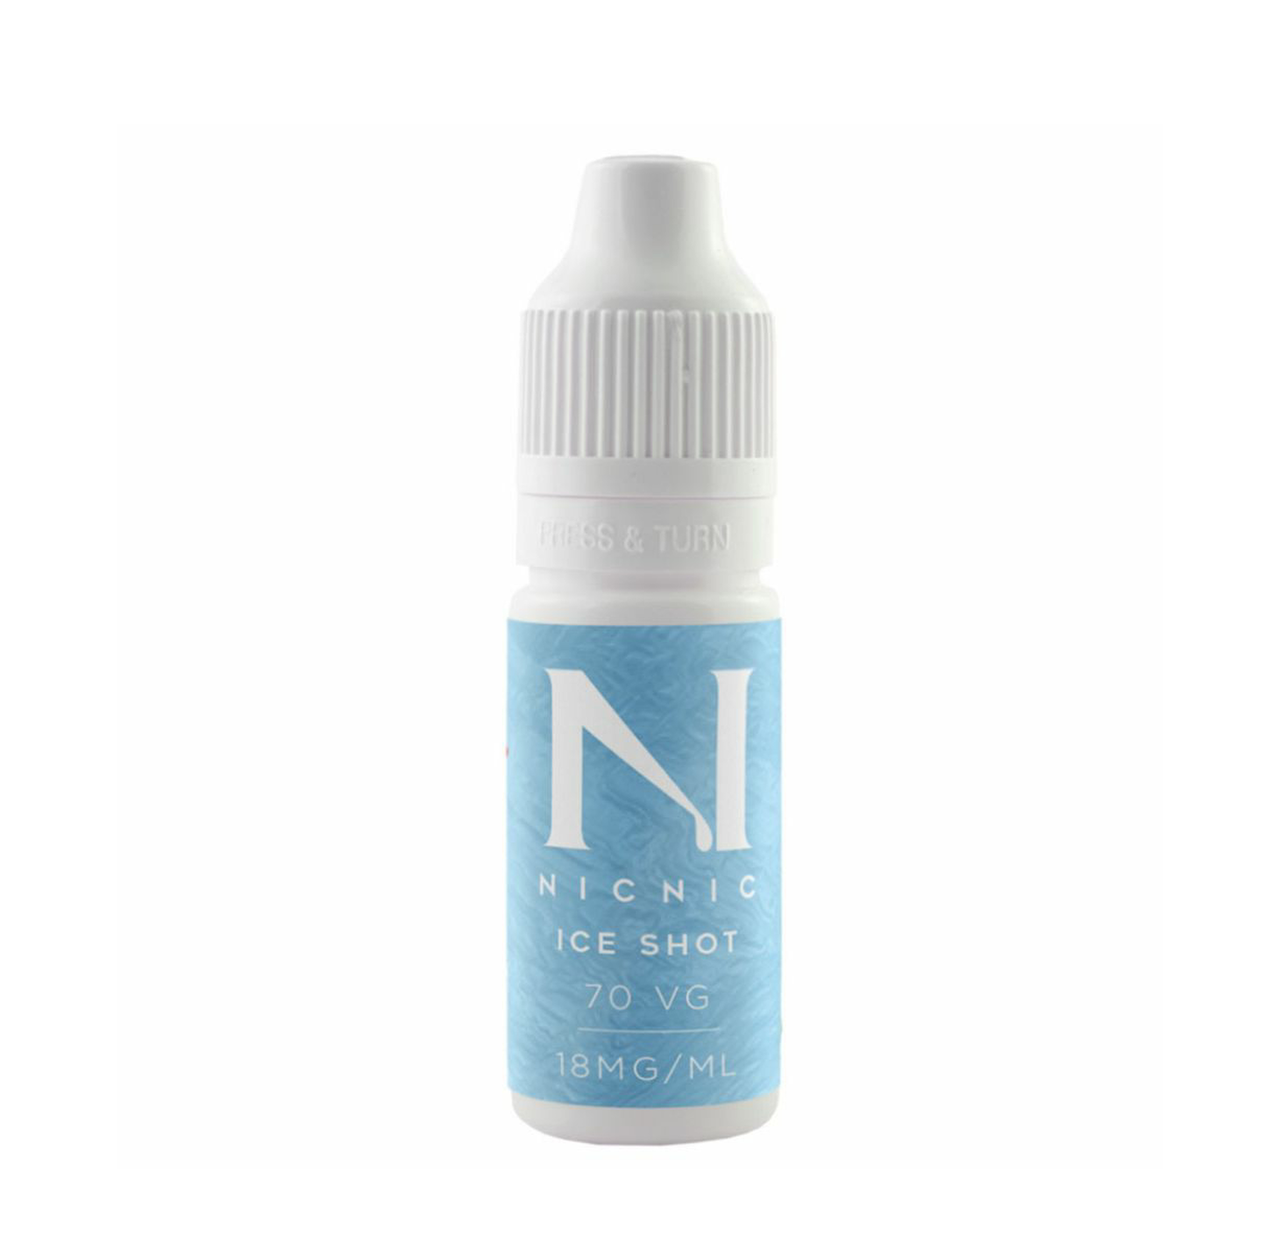 Nic Nic Ice 18mg Nic Shot UK